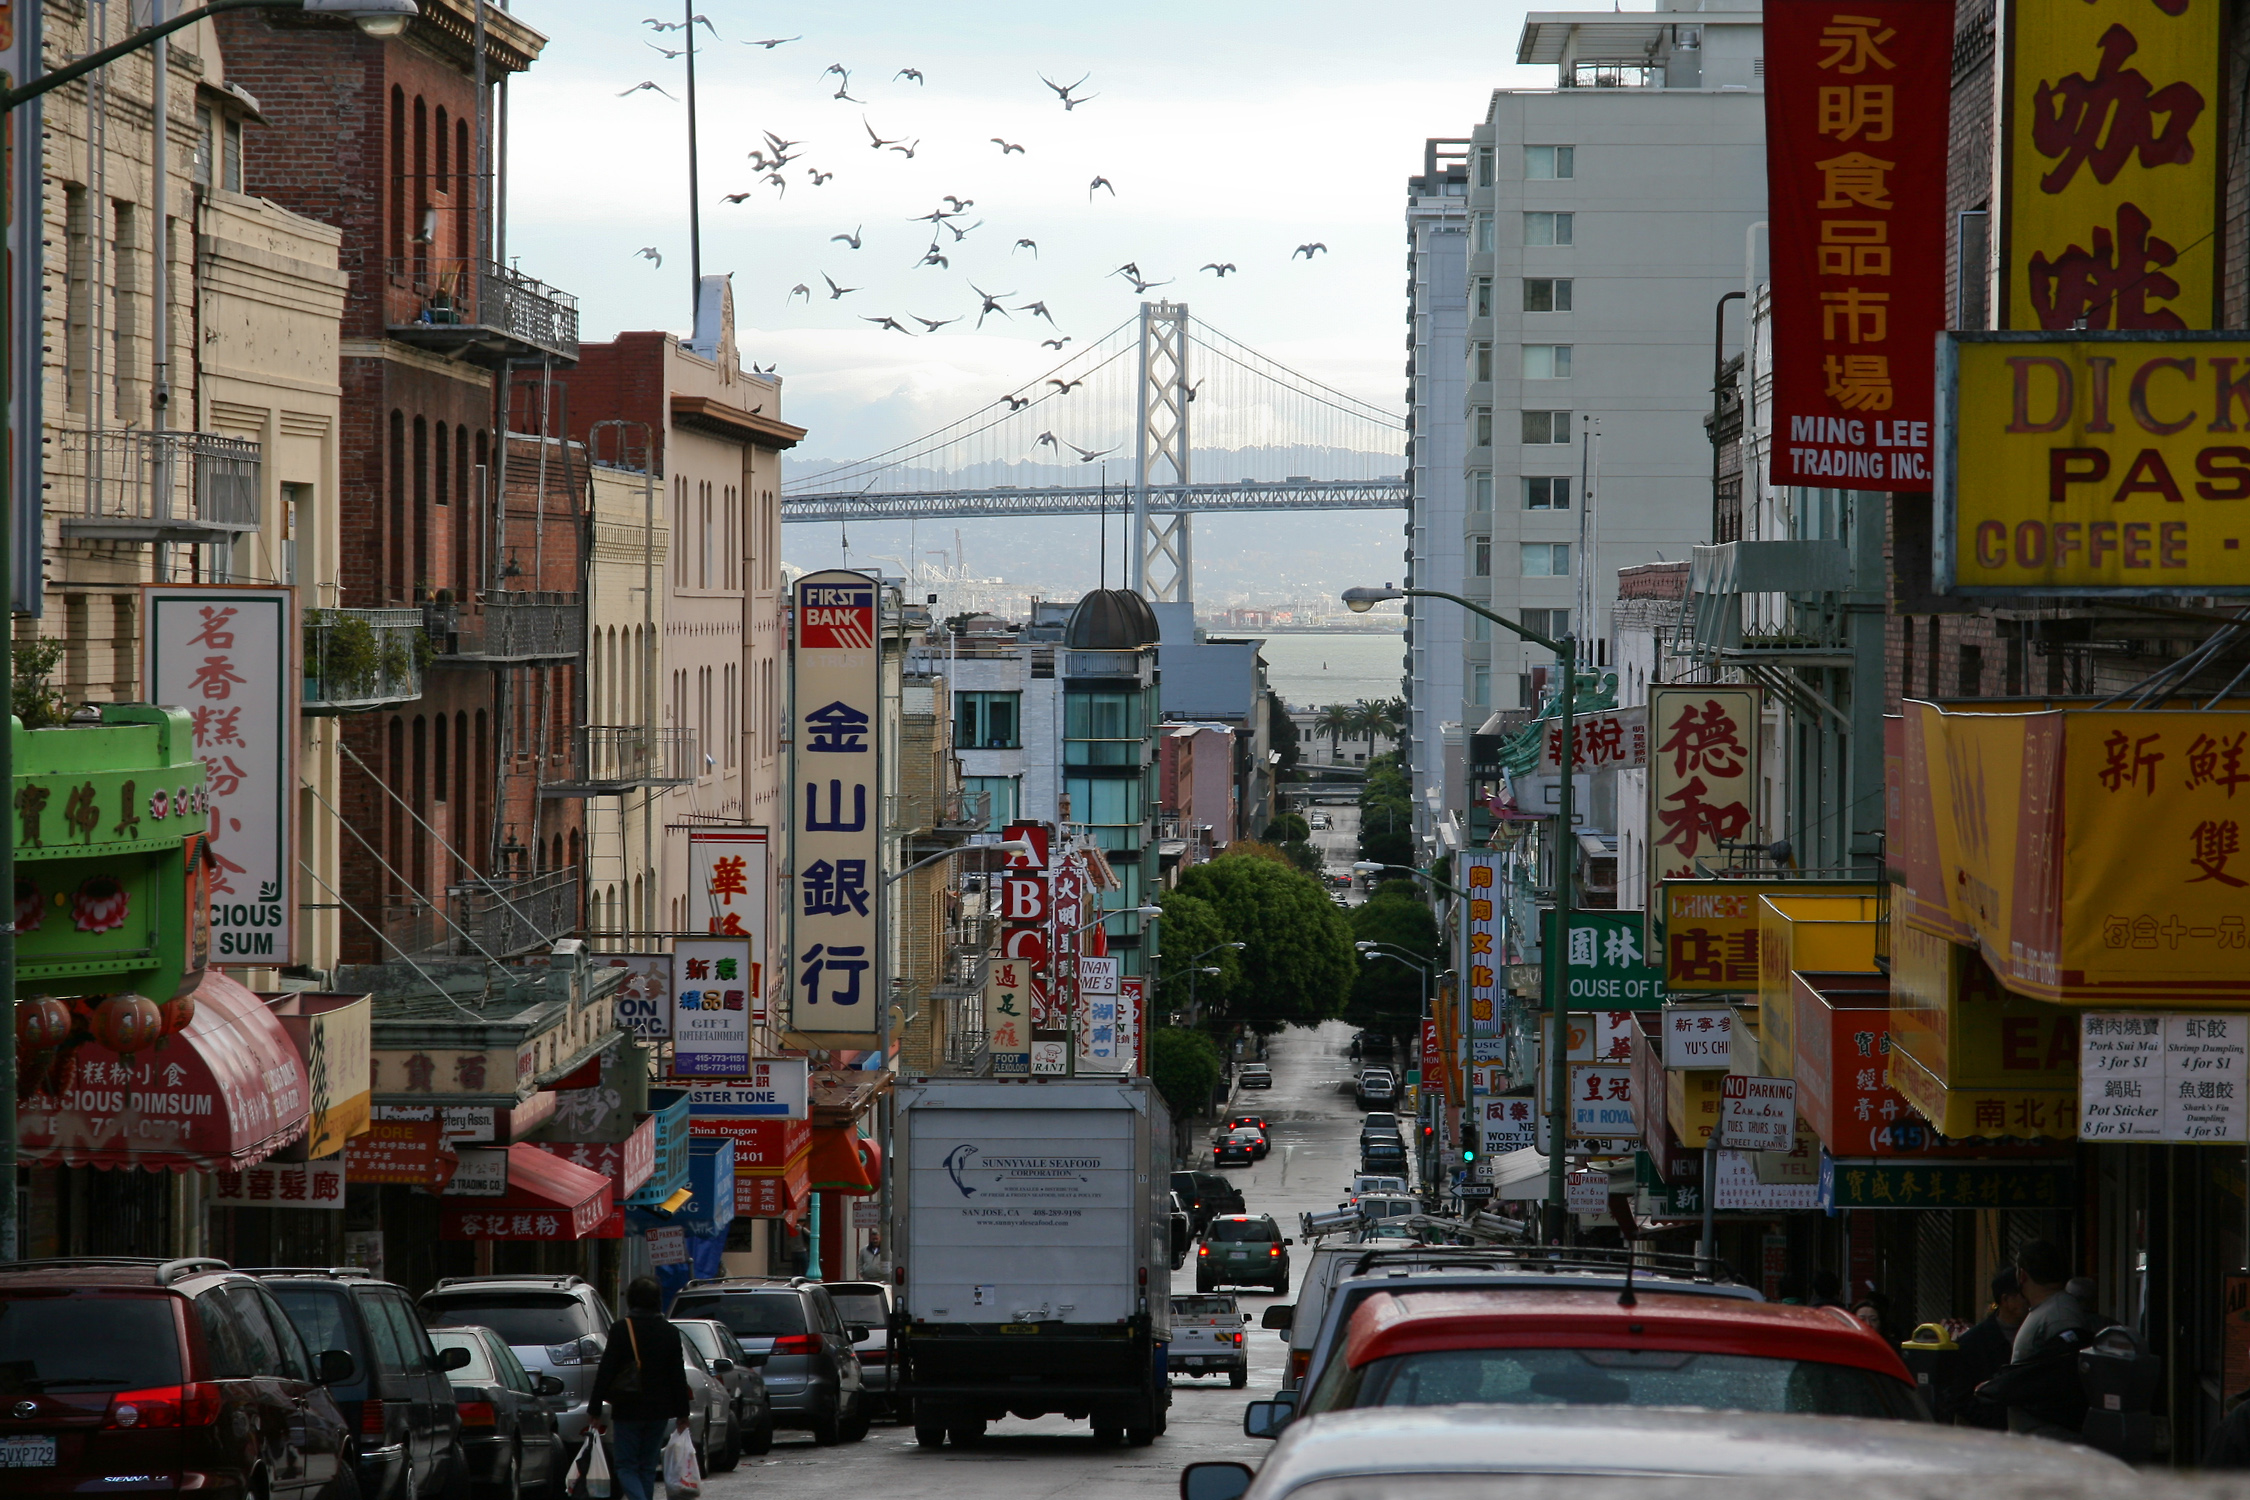 Chinatown in San Francisco, CA. In the background you can see the Bay Bridge. - by Christian Mehlführer, 27 November 2006 (San_Francisco_China_Town_MC.jpg) (CC BY 3.0 [https://creativecommons.org/licenses/by/3.0/deed.en]), via Wikimedia Commons